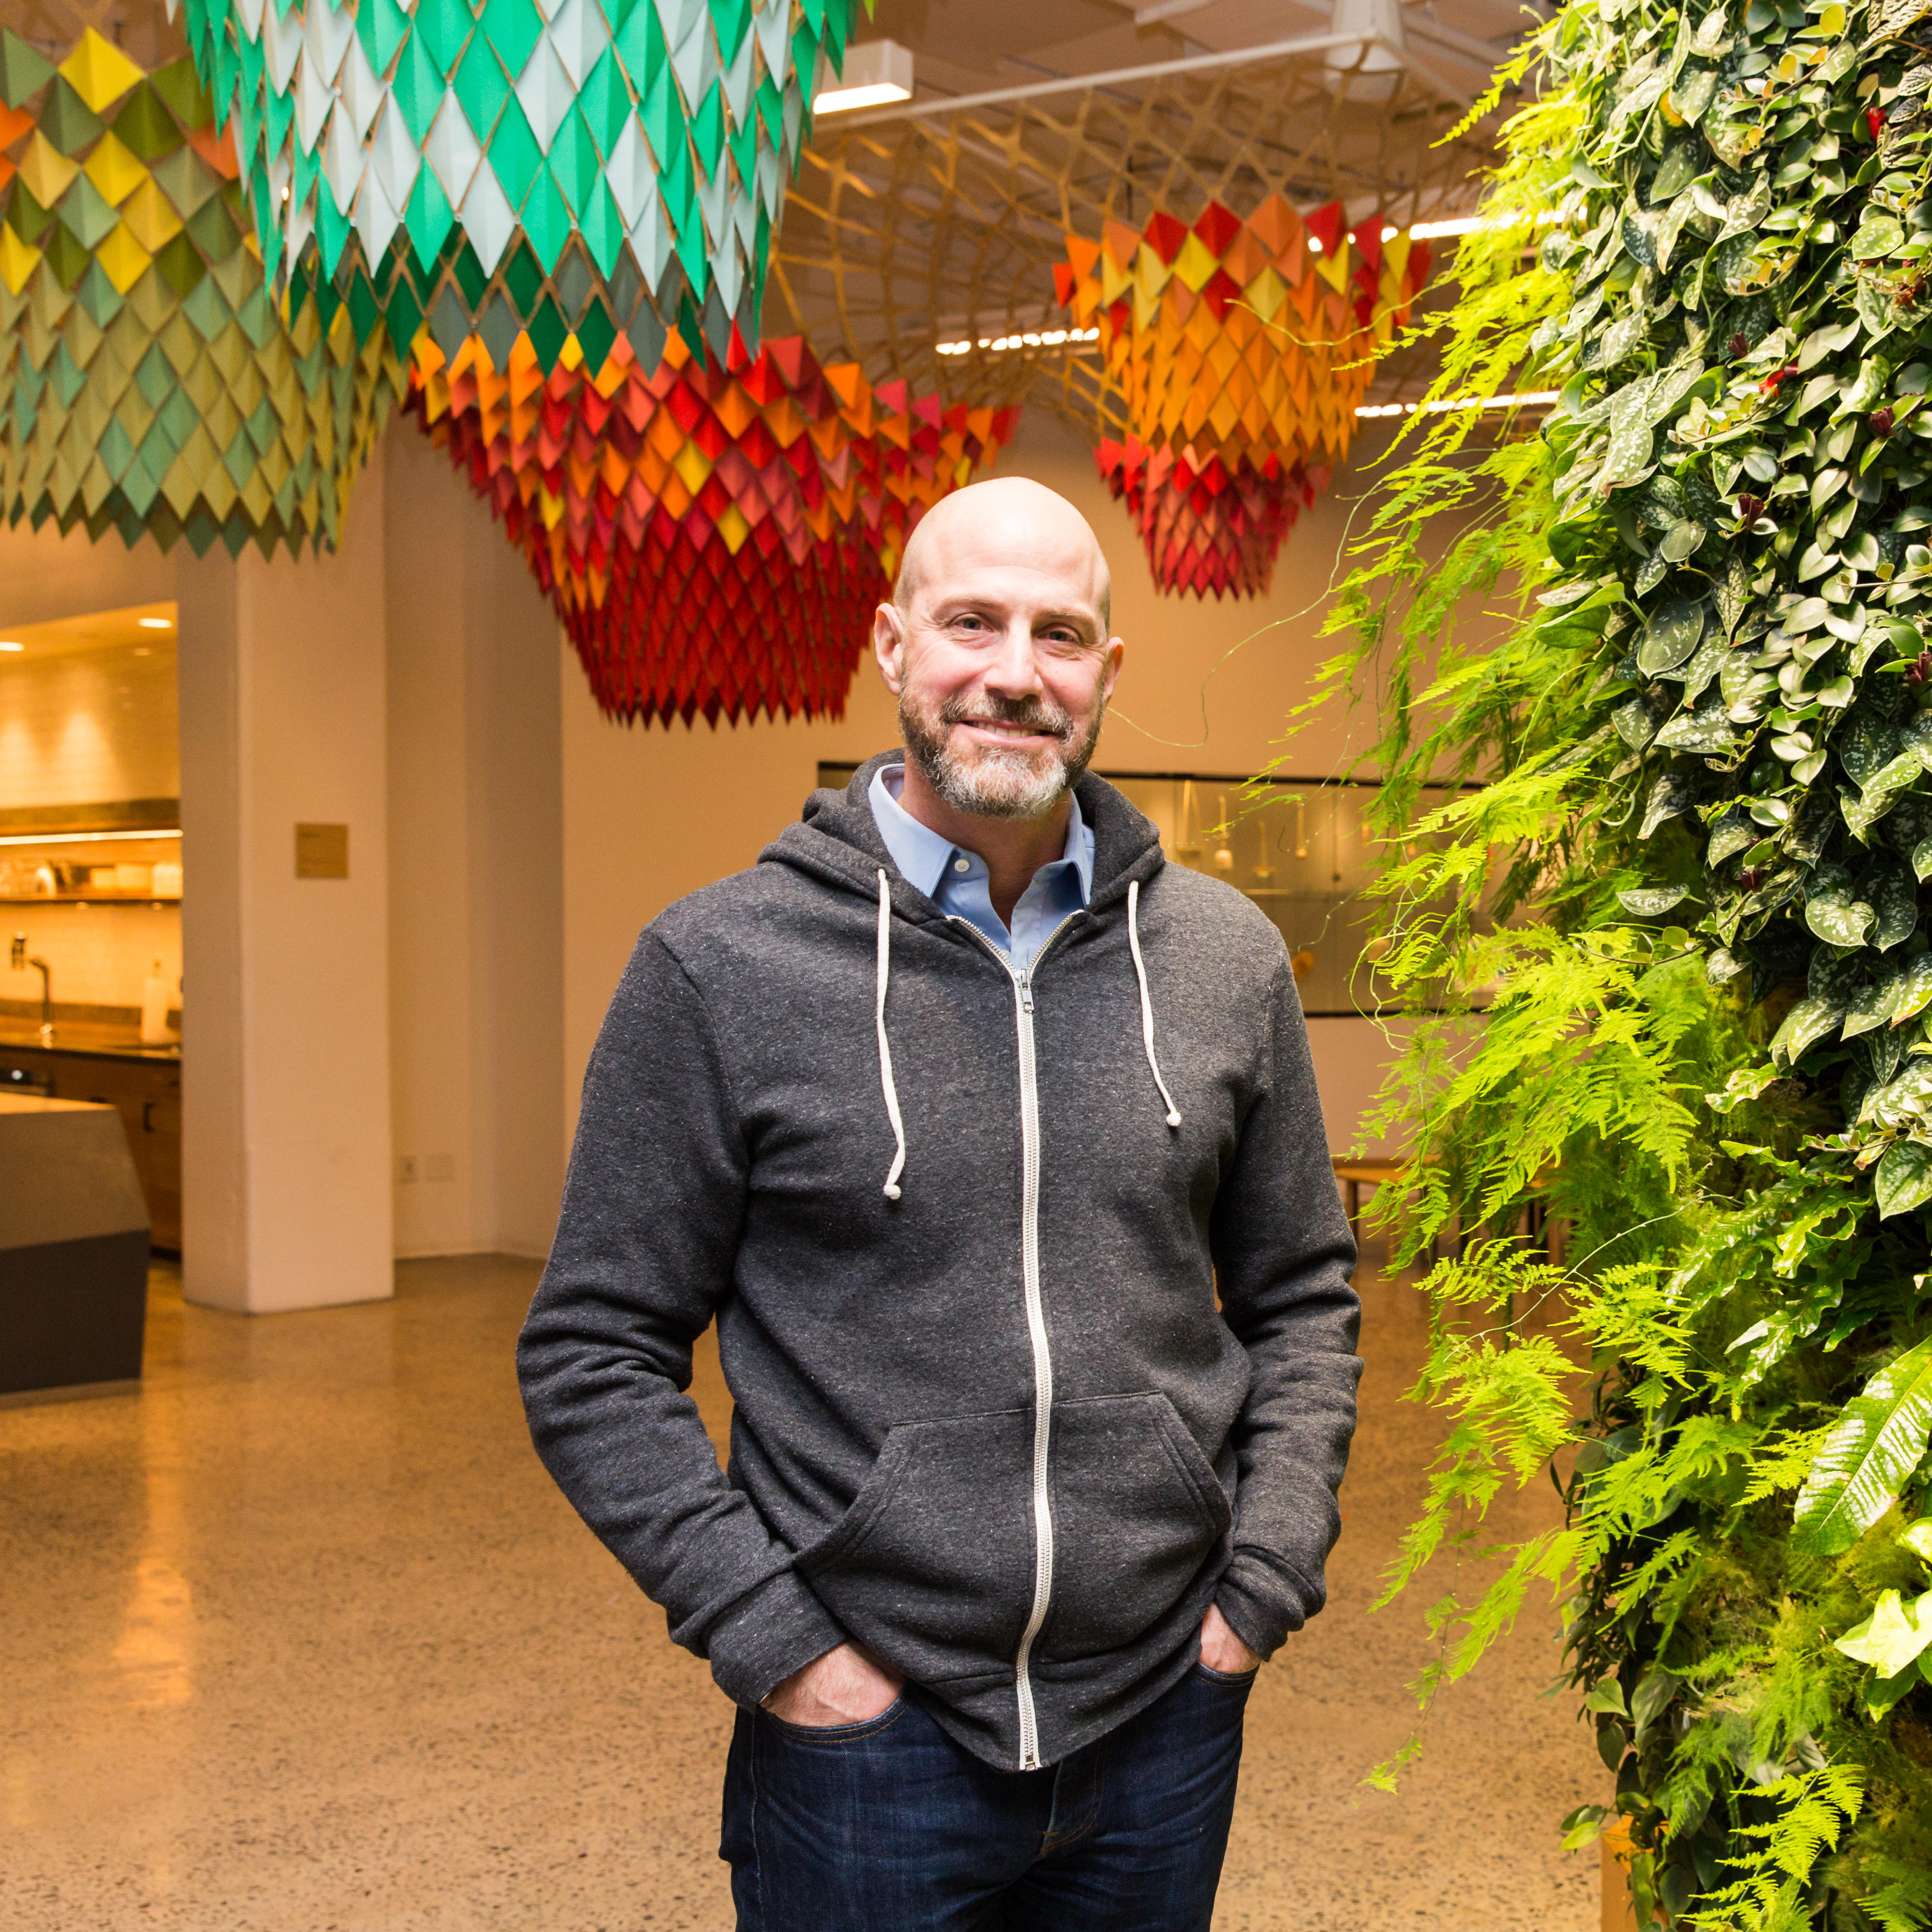 etsy-hq-and-ceo-2018-nyc-16